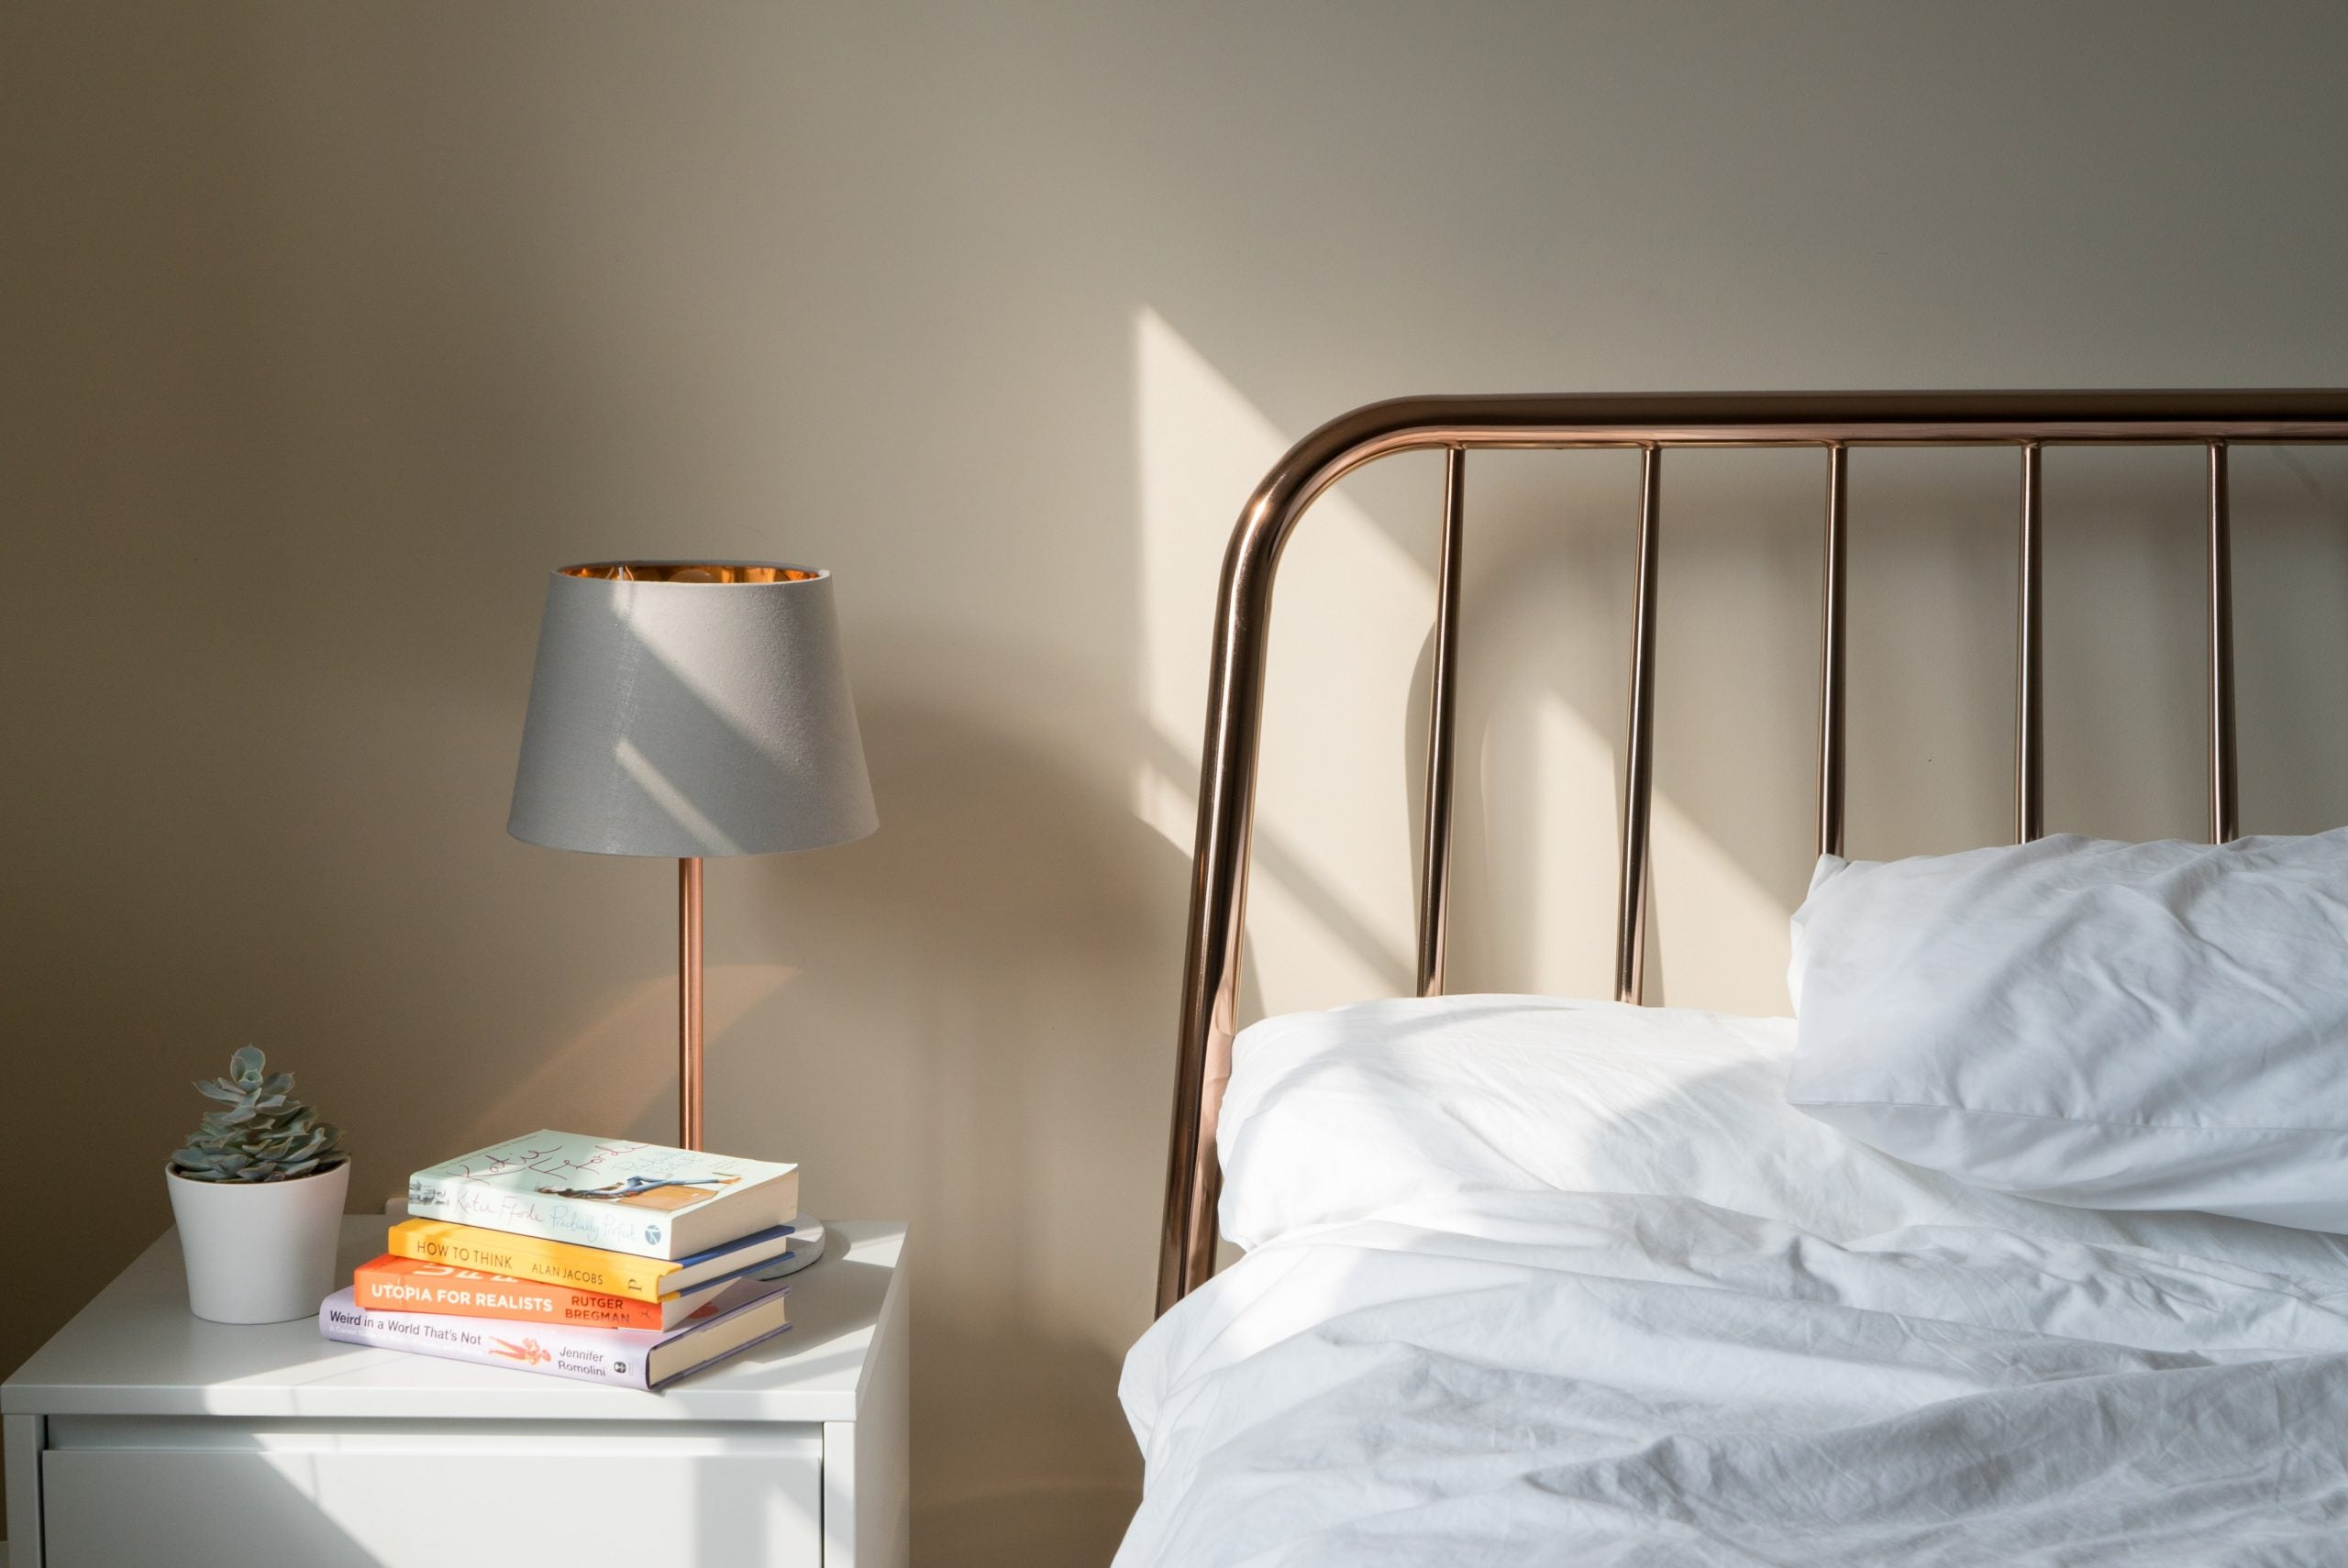 A bed and side table with a pile of books   Julieta   The most comfortable heels.